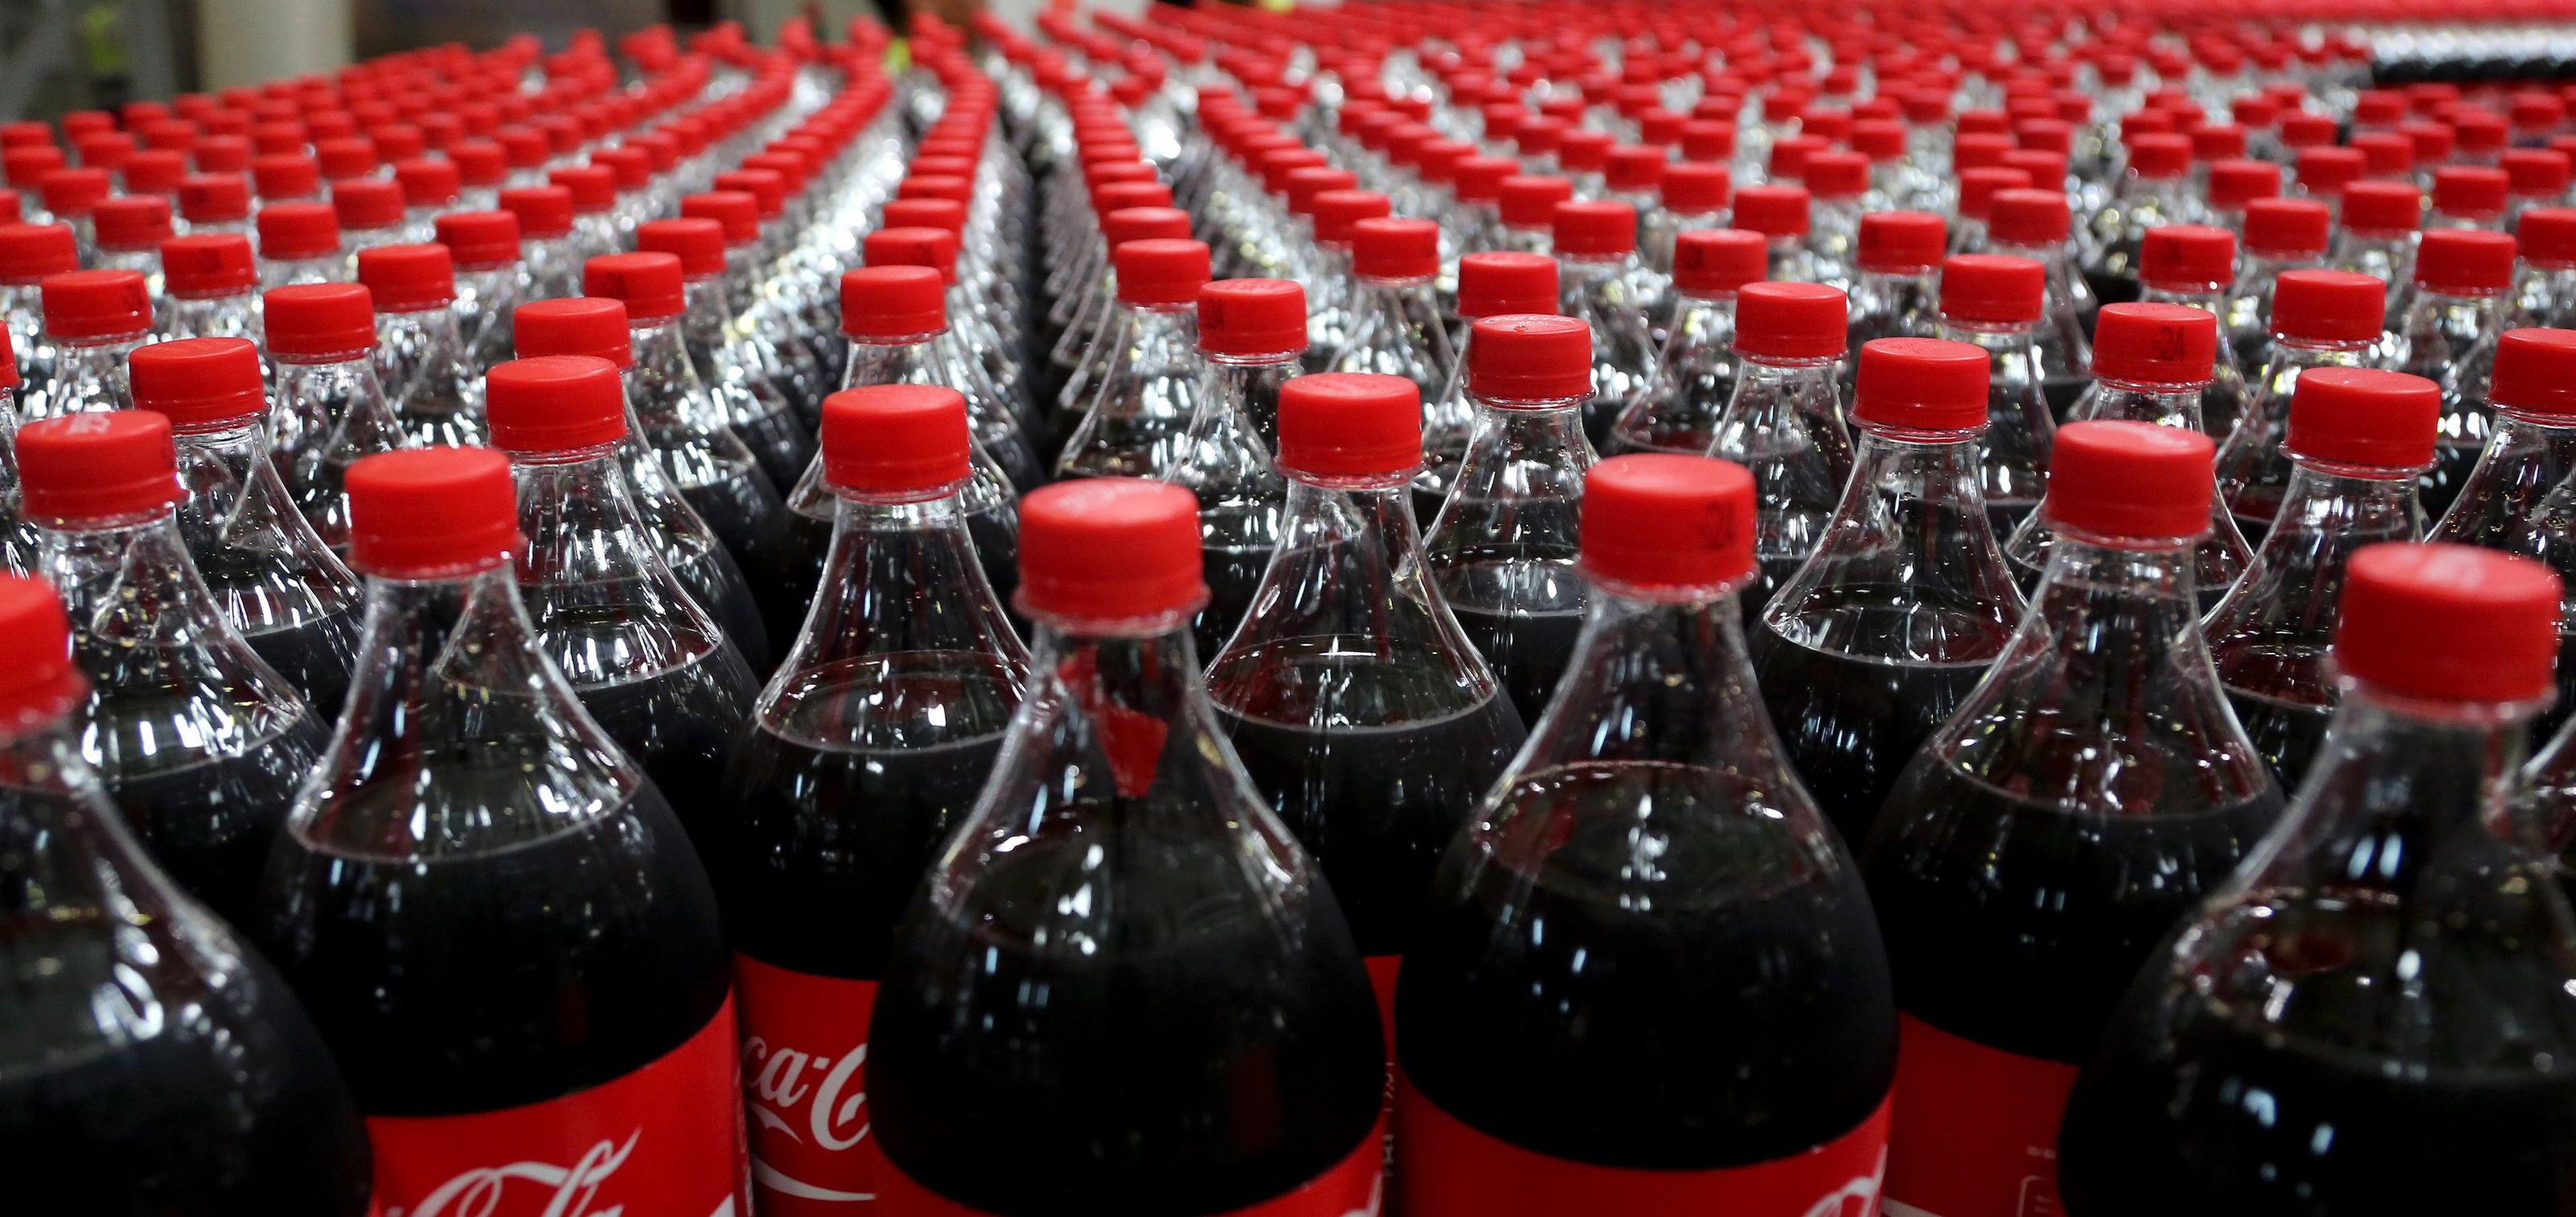 an overview of the coca cola company in the history of united states The coca-cola company is a beverage company the company owns or licenses and markets non-alcoholic beverage brands, primarily sparkling beverages and a range of still beverages, such as waters.